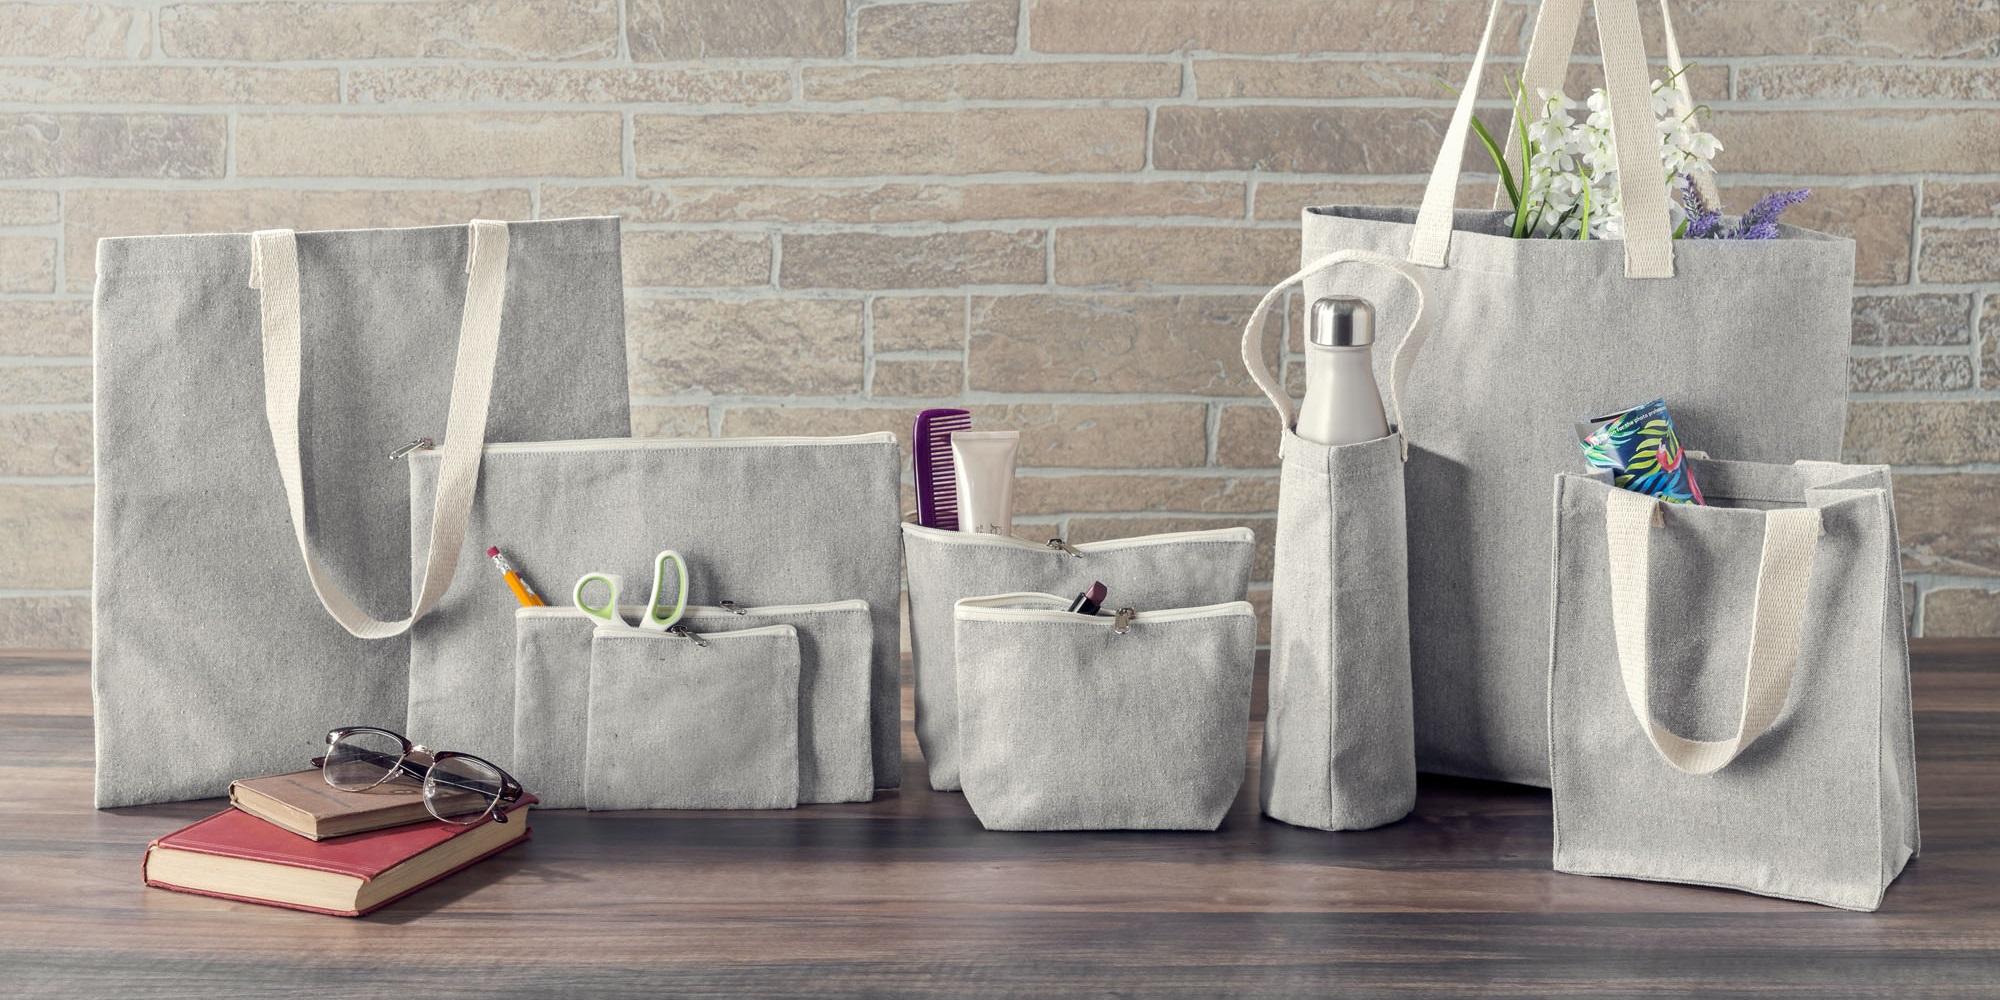 Recycled Canvas, Wholesale Tote Bags   Packaging Decor